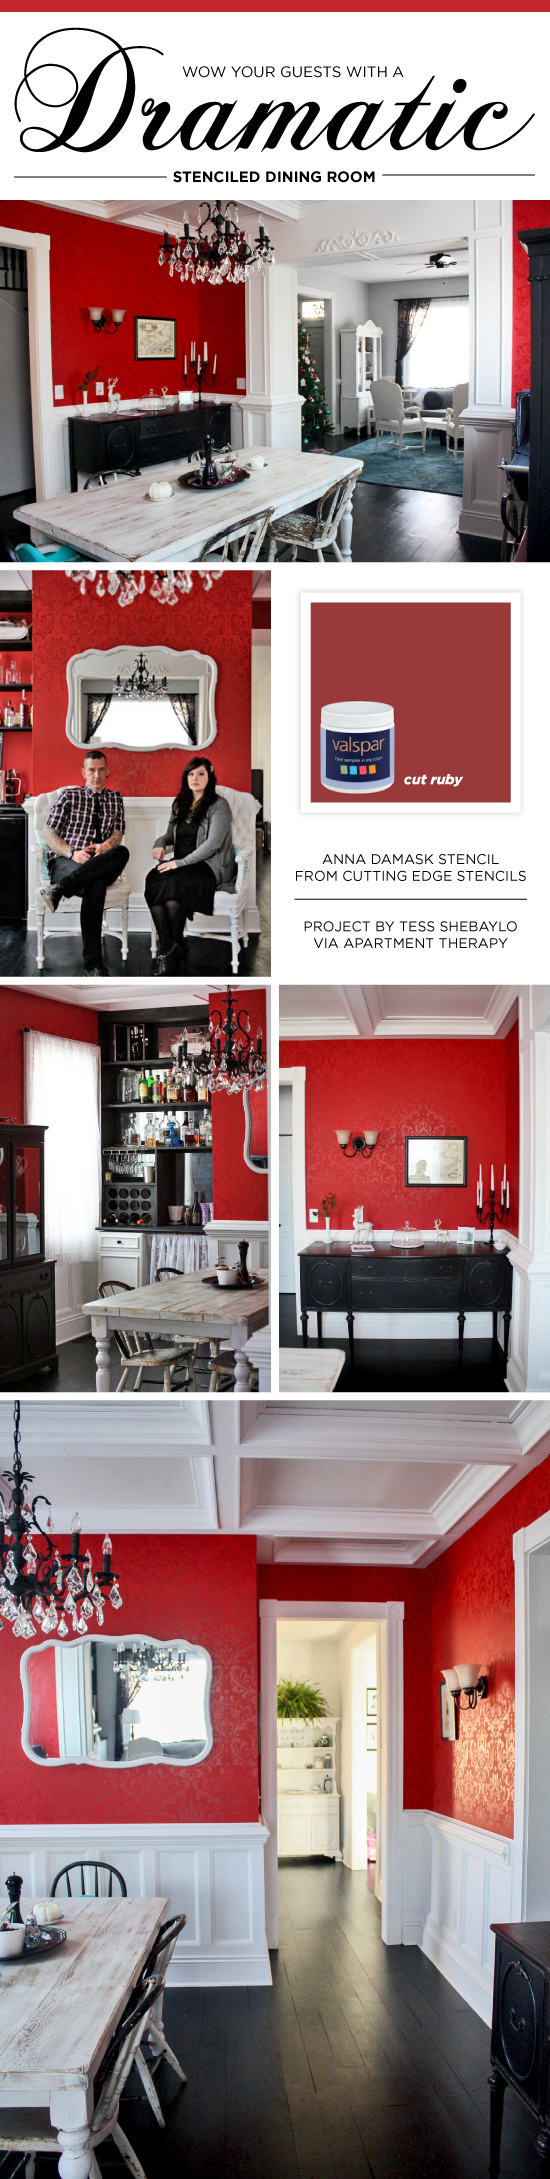 Cutting Edge Stencils shares a DIY bold red stenciled dining room featuring the Anna Damask Stencil. http://www.cuttingedgestencils.com/damask-stencil.html